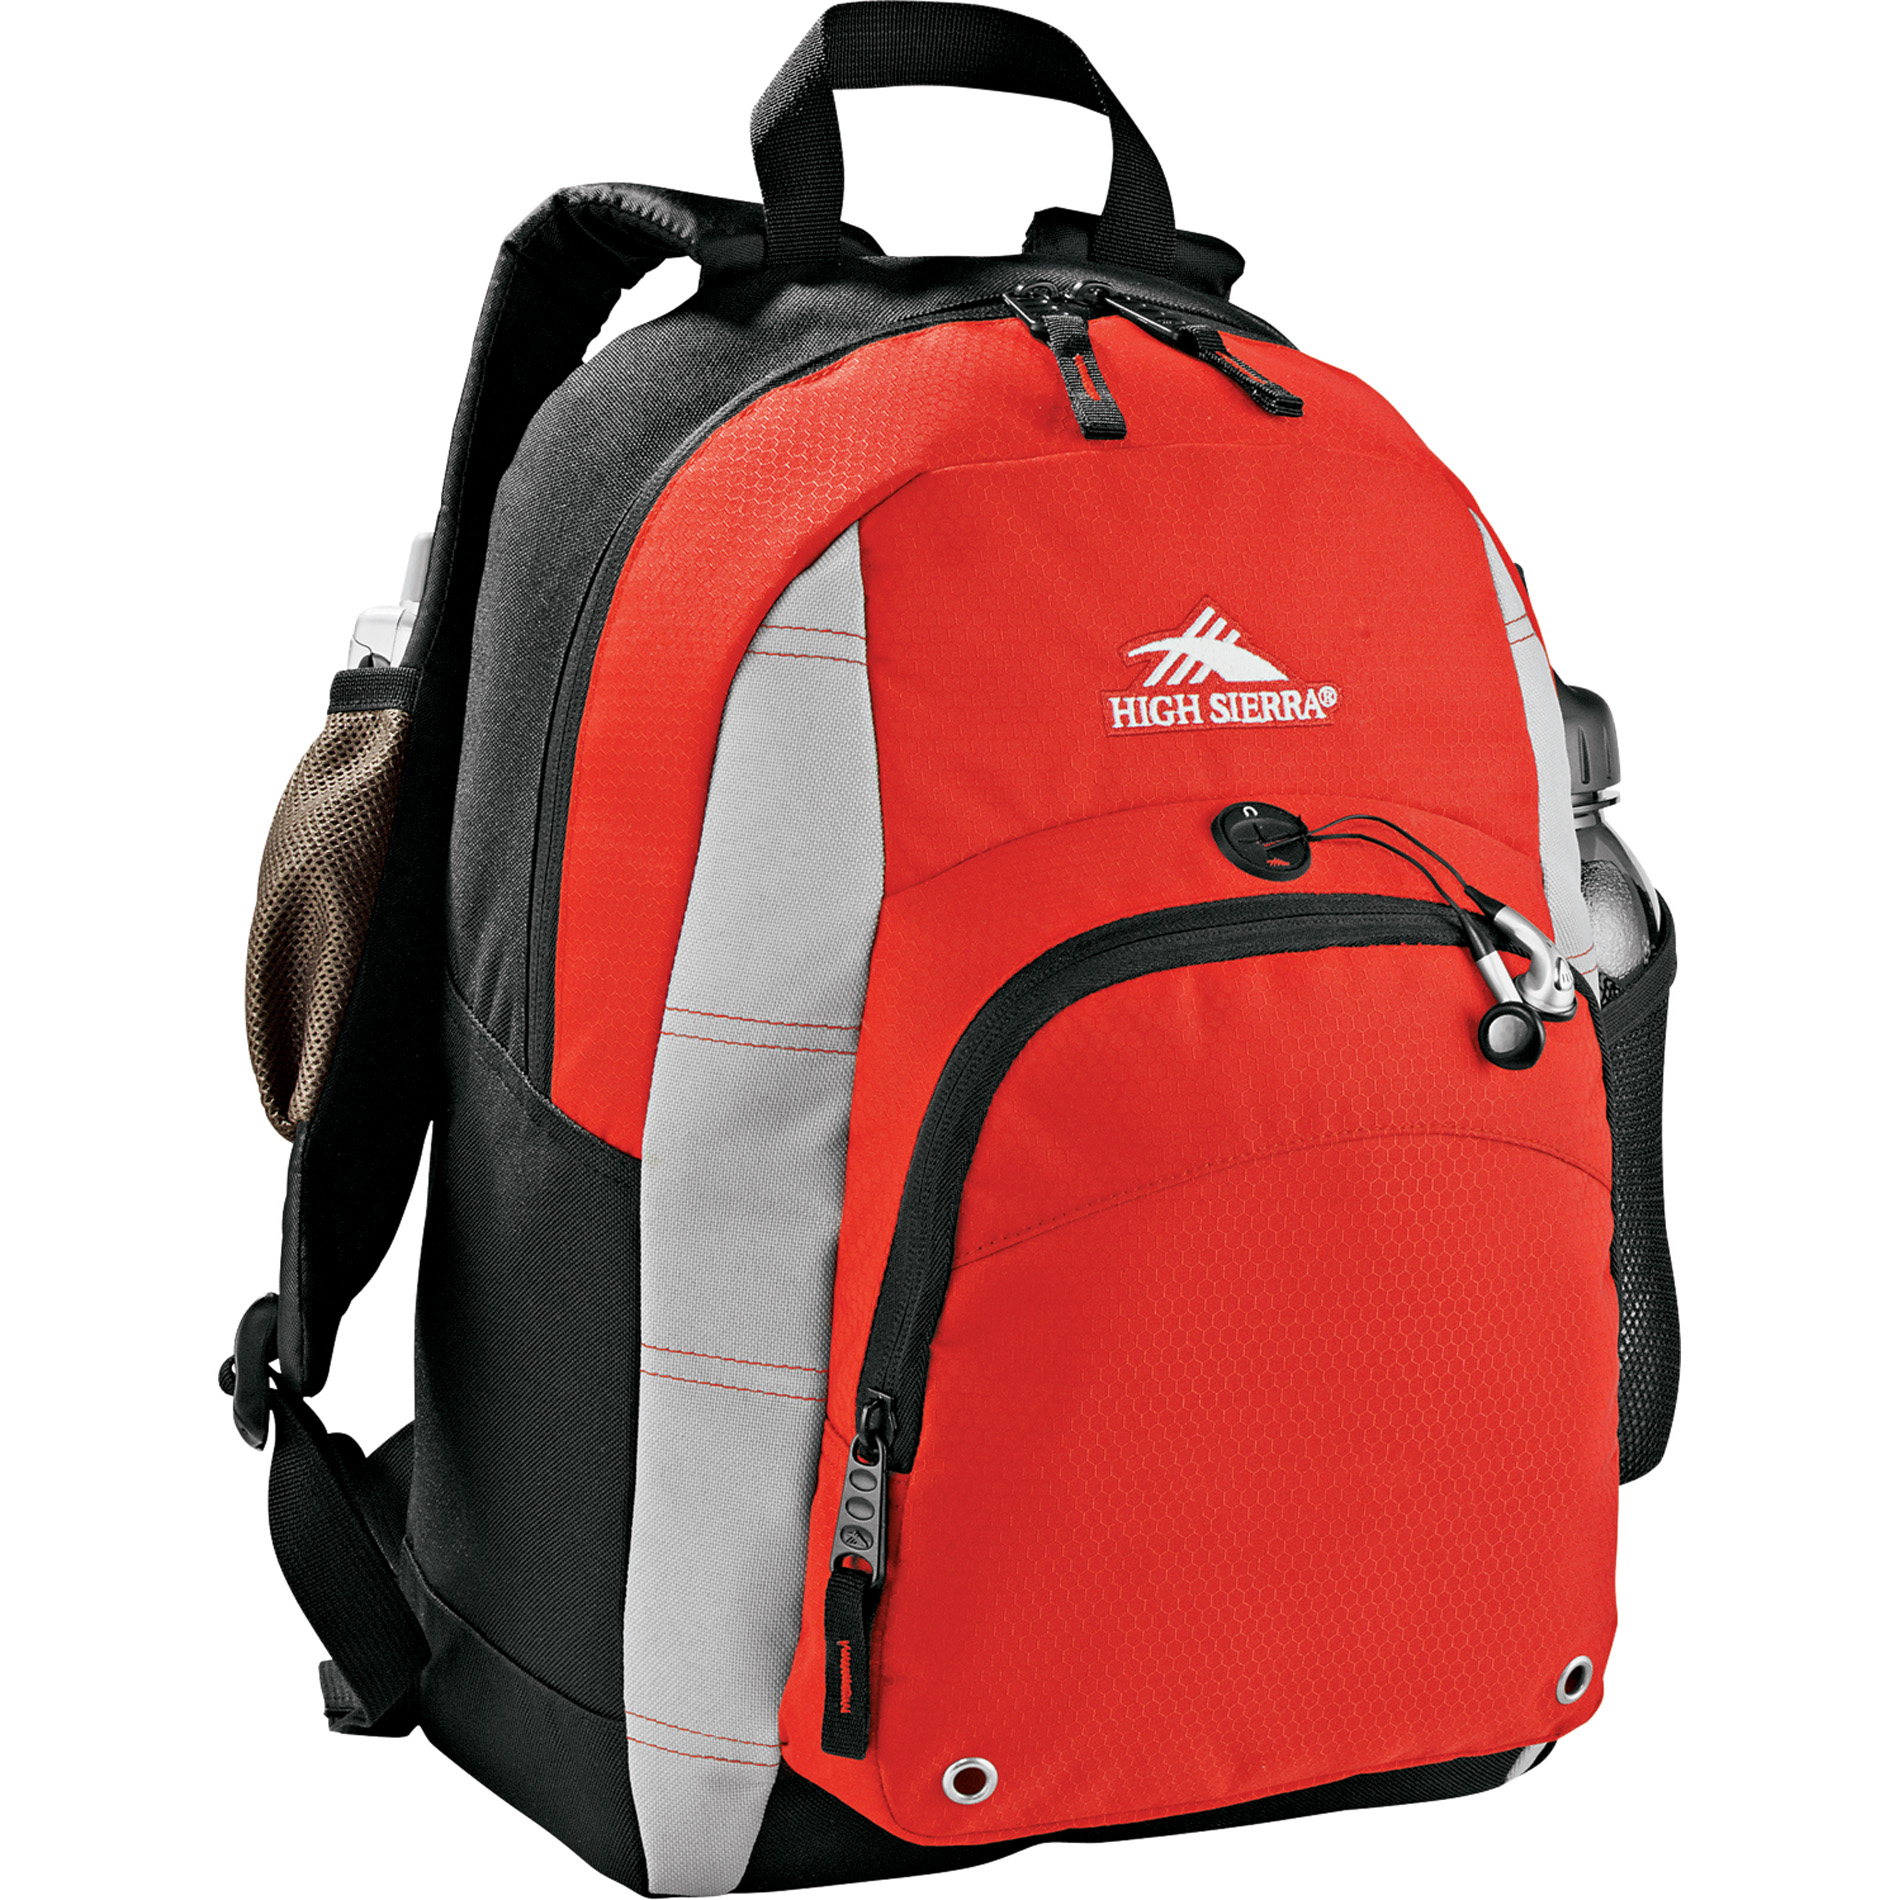 High Sierra 8050-12 - Impact Backpack